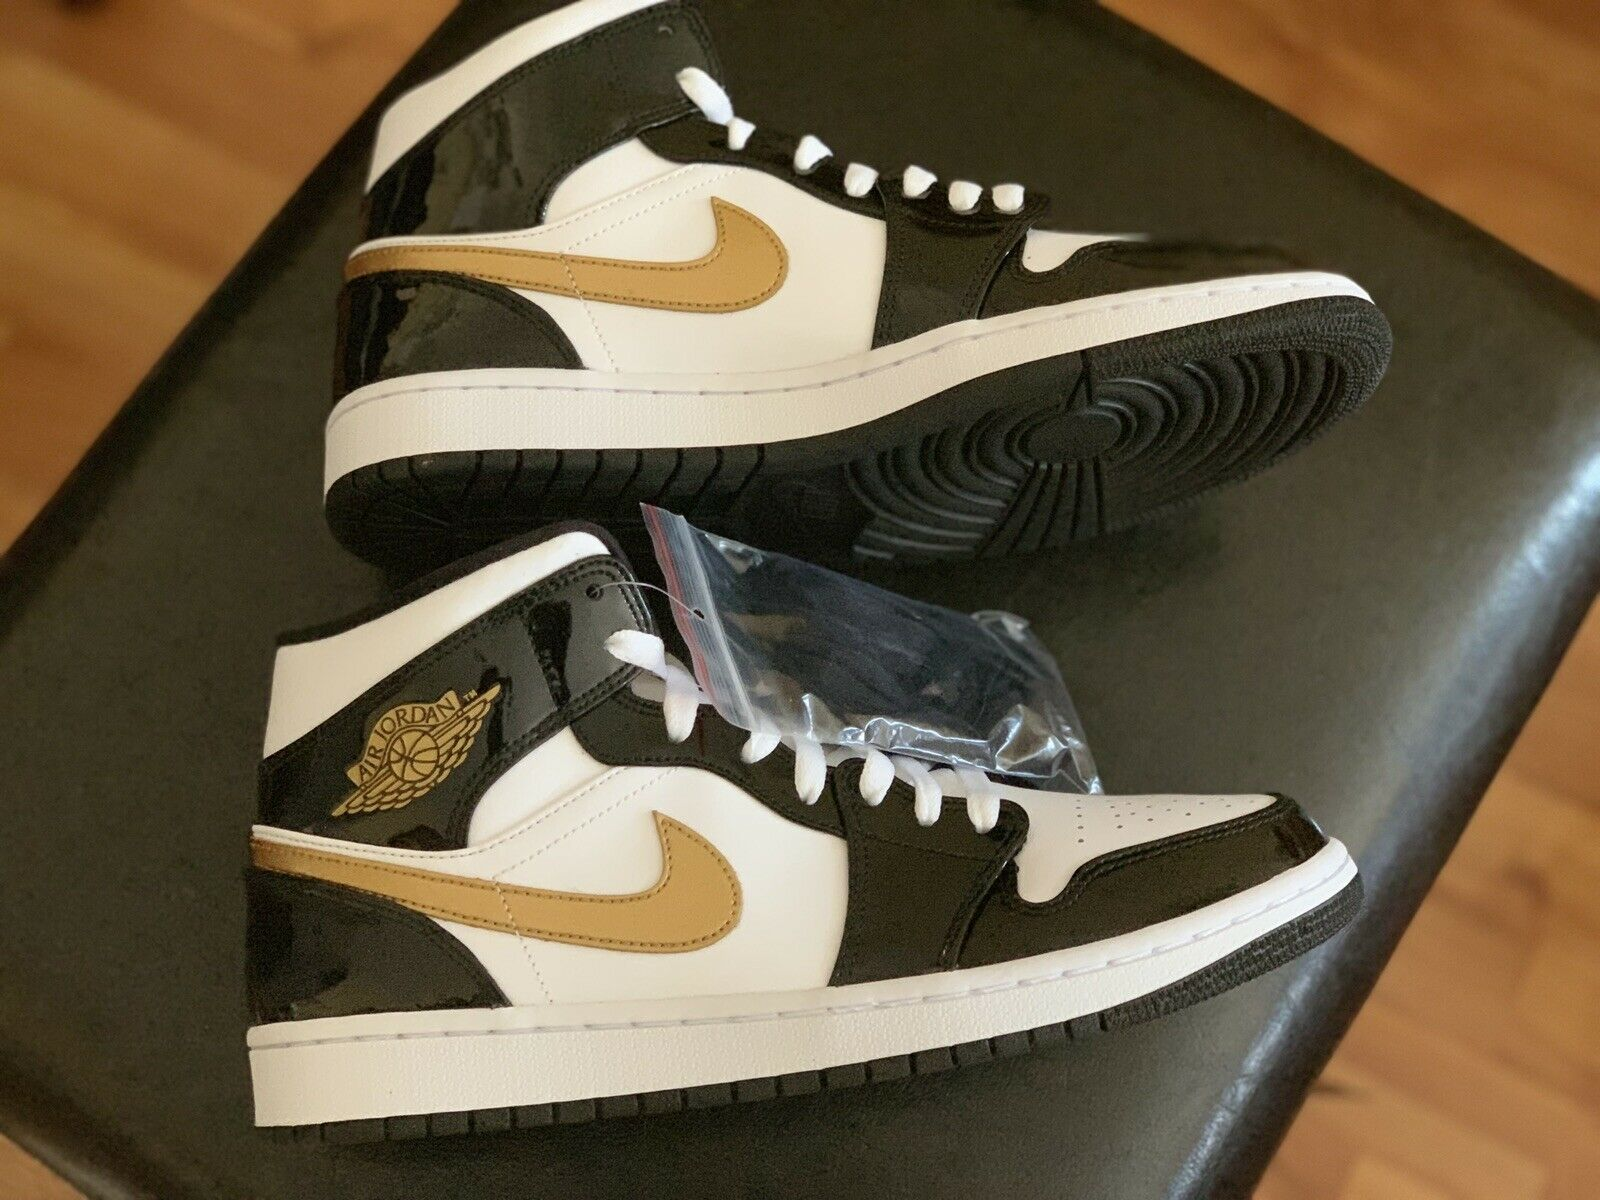 Air Jordan 1 MID SE Black metallic gold-white  (852542-007) SZ 9.5 men's